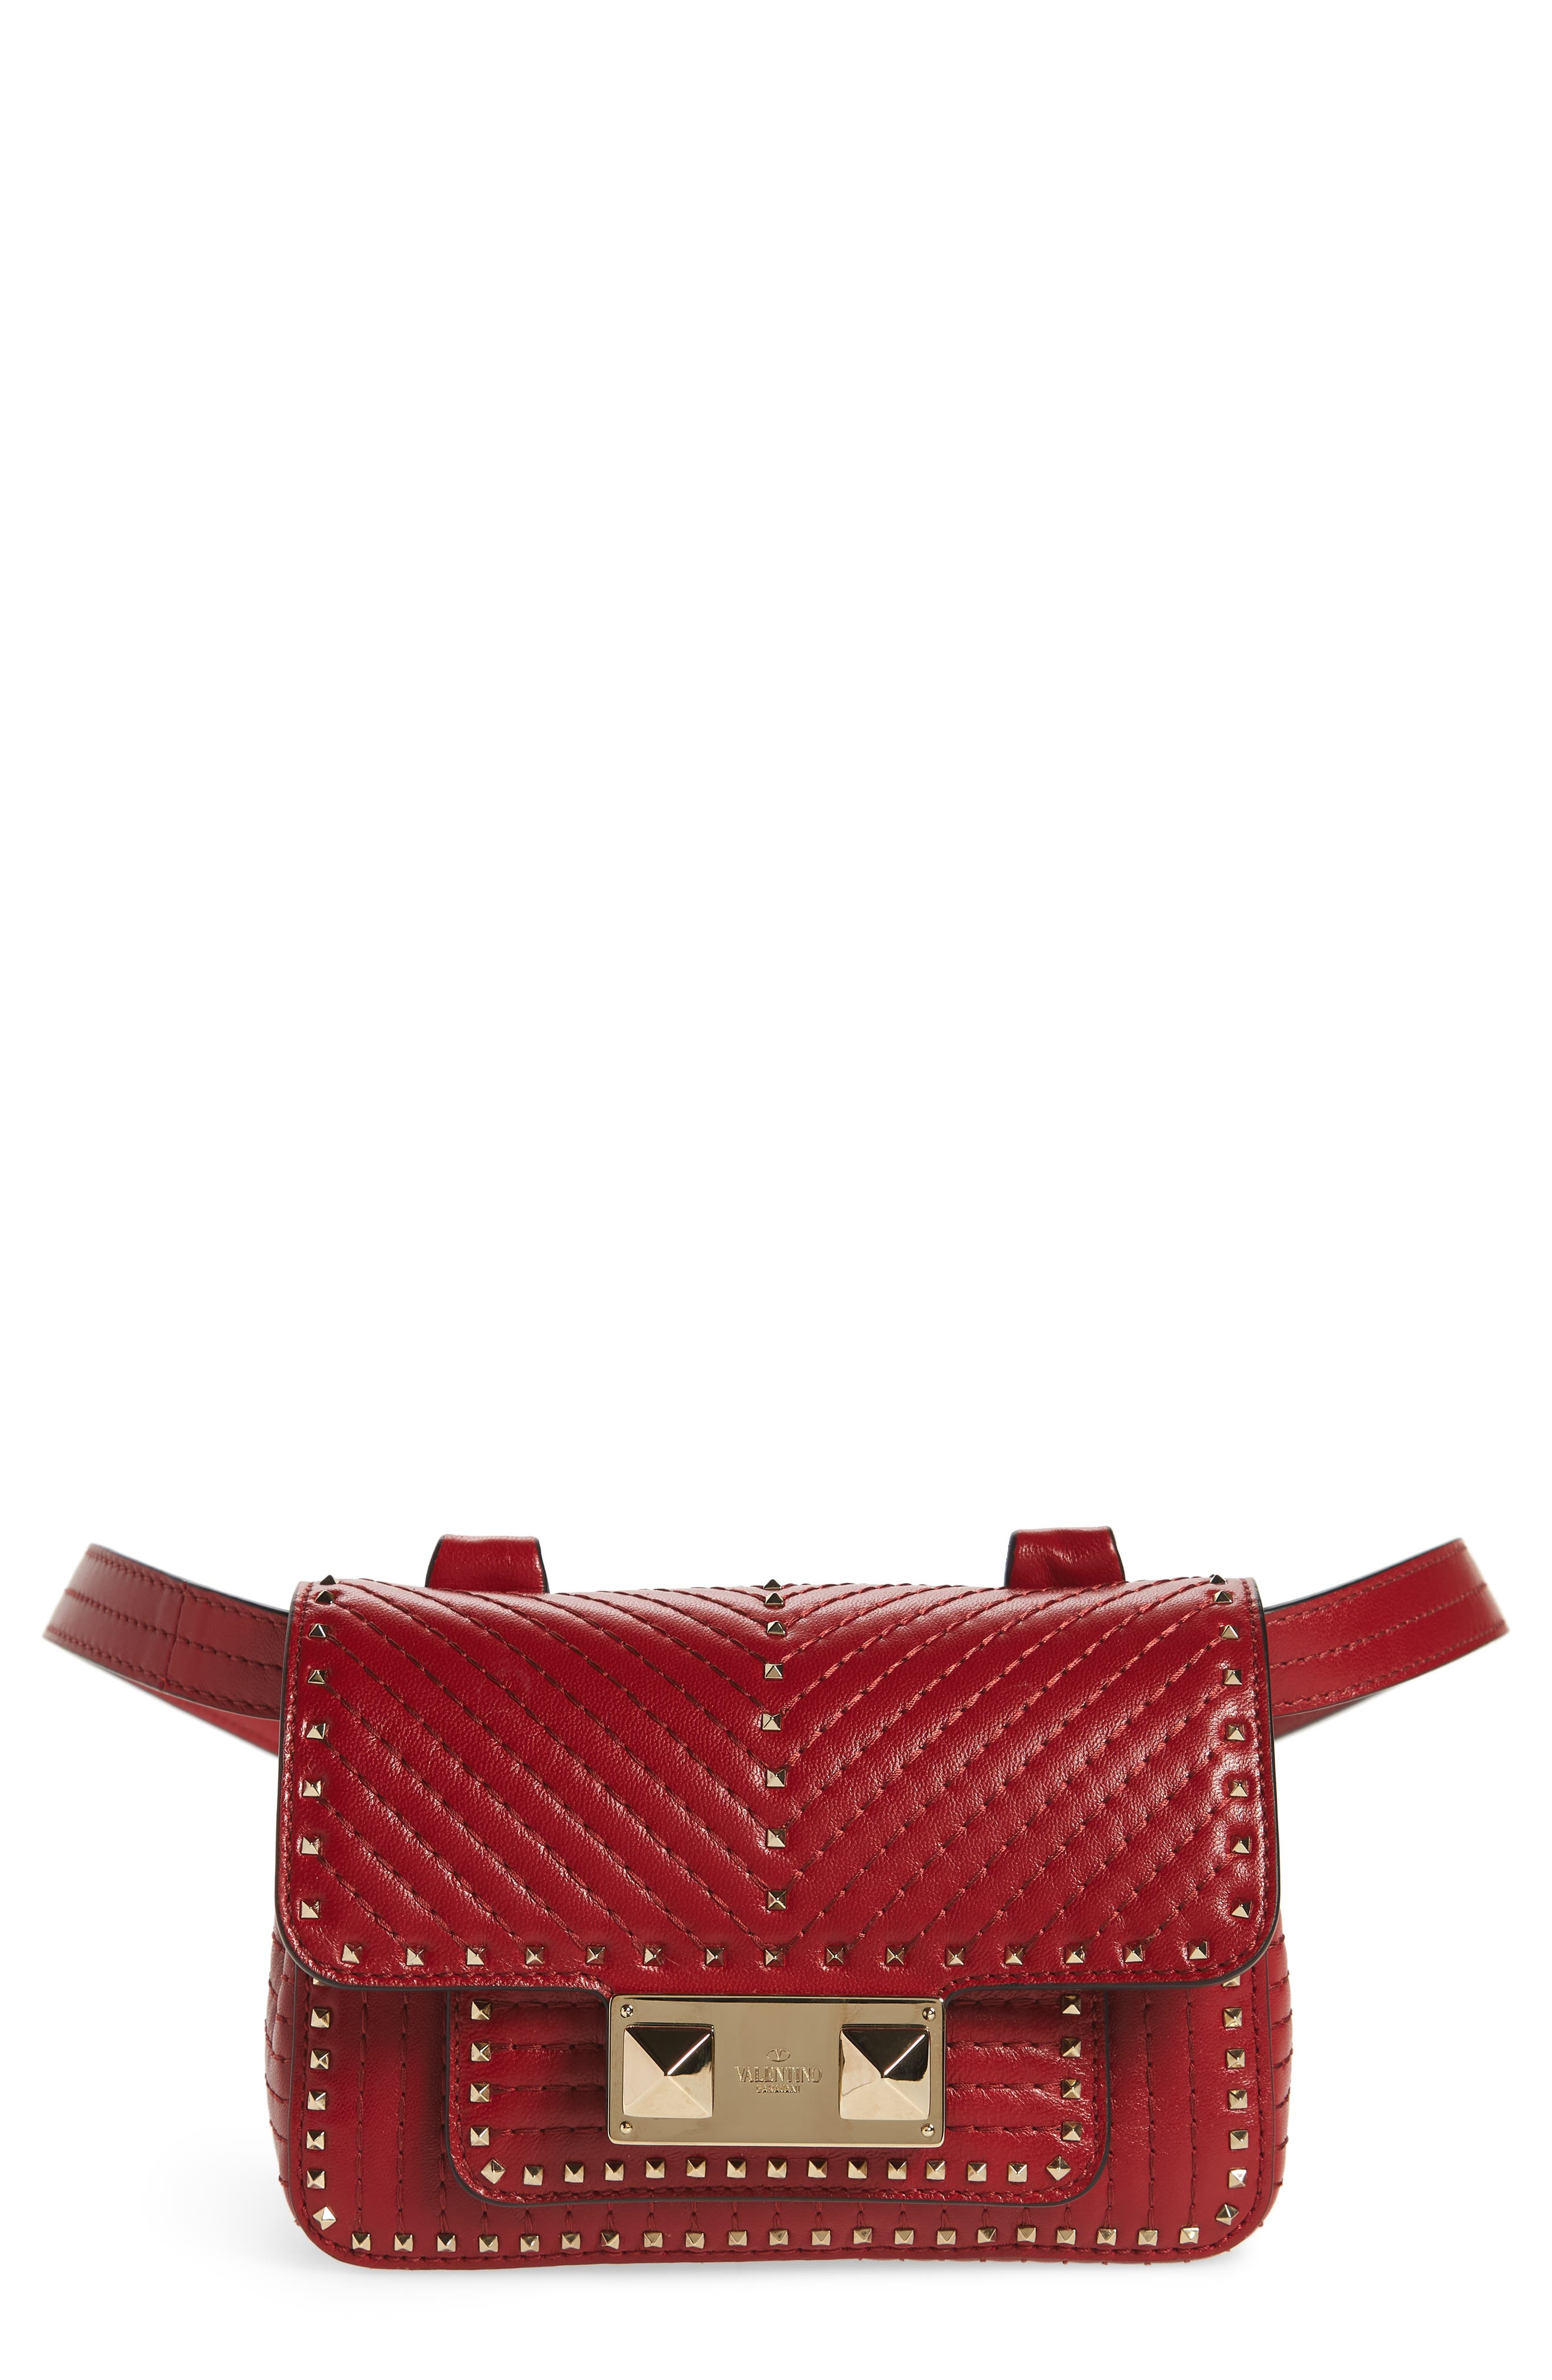 Mini Ziggystud Leather Convertible Crossbody/Belt Bag,                             Main thumbnail 1, color,                             Rosso